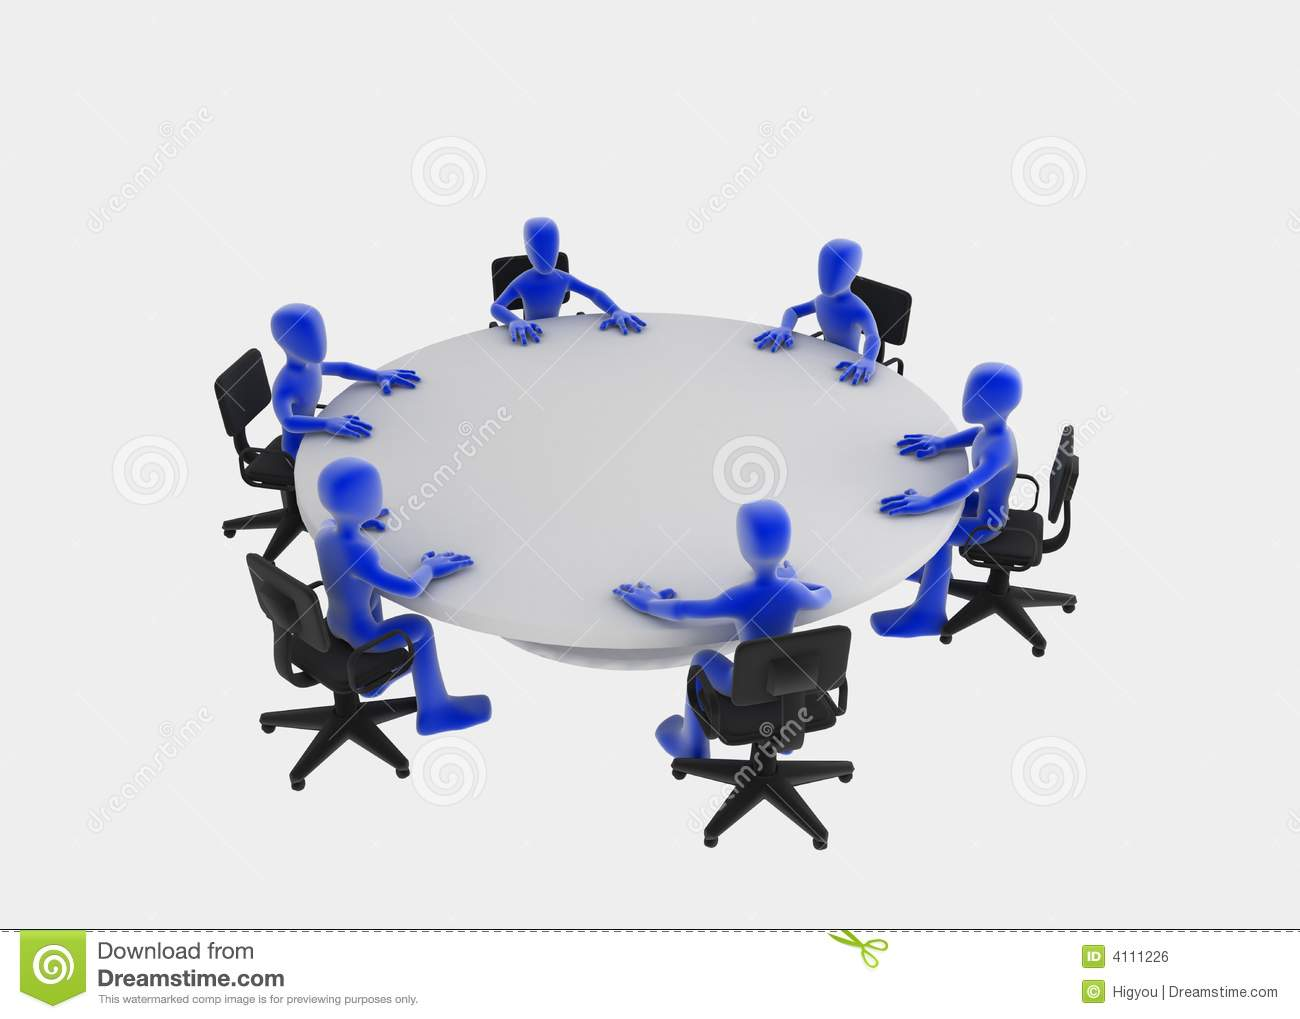 3d office design online free with Royalty Free Stock Image Round Table Meeting Image4111226 on 12 0 1025 likewise 20 Islamic Facebook Cover Photo For Muslims together with Royalty Free Stock Image Round Table Meeting Image4111226 further Free 3d Model Design In Sketchup A Modern Stylish House also Royalty Free Stock Images Bunny Man Image17011829.